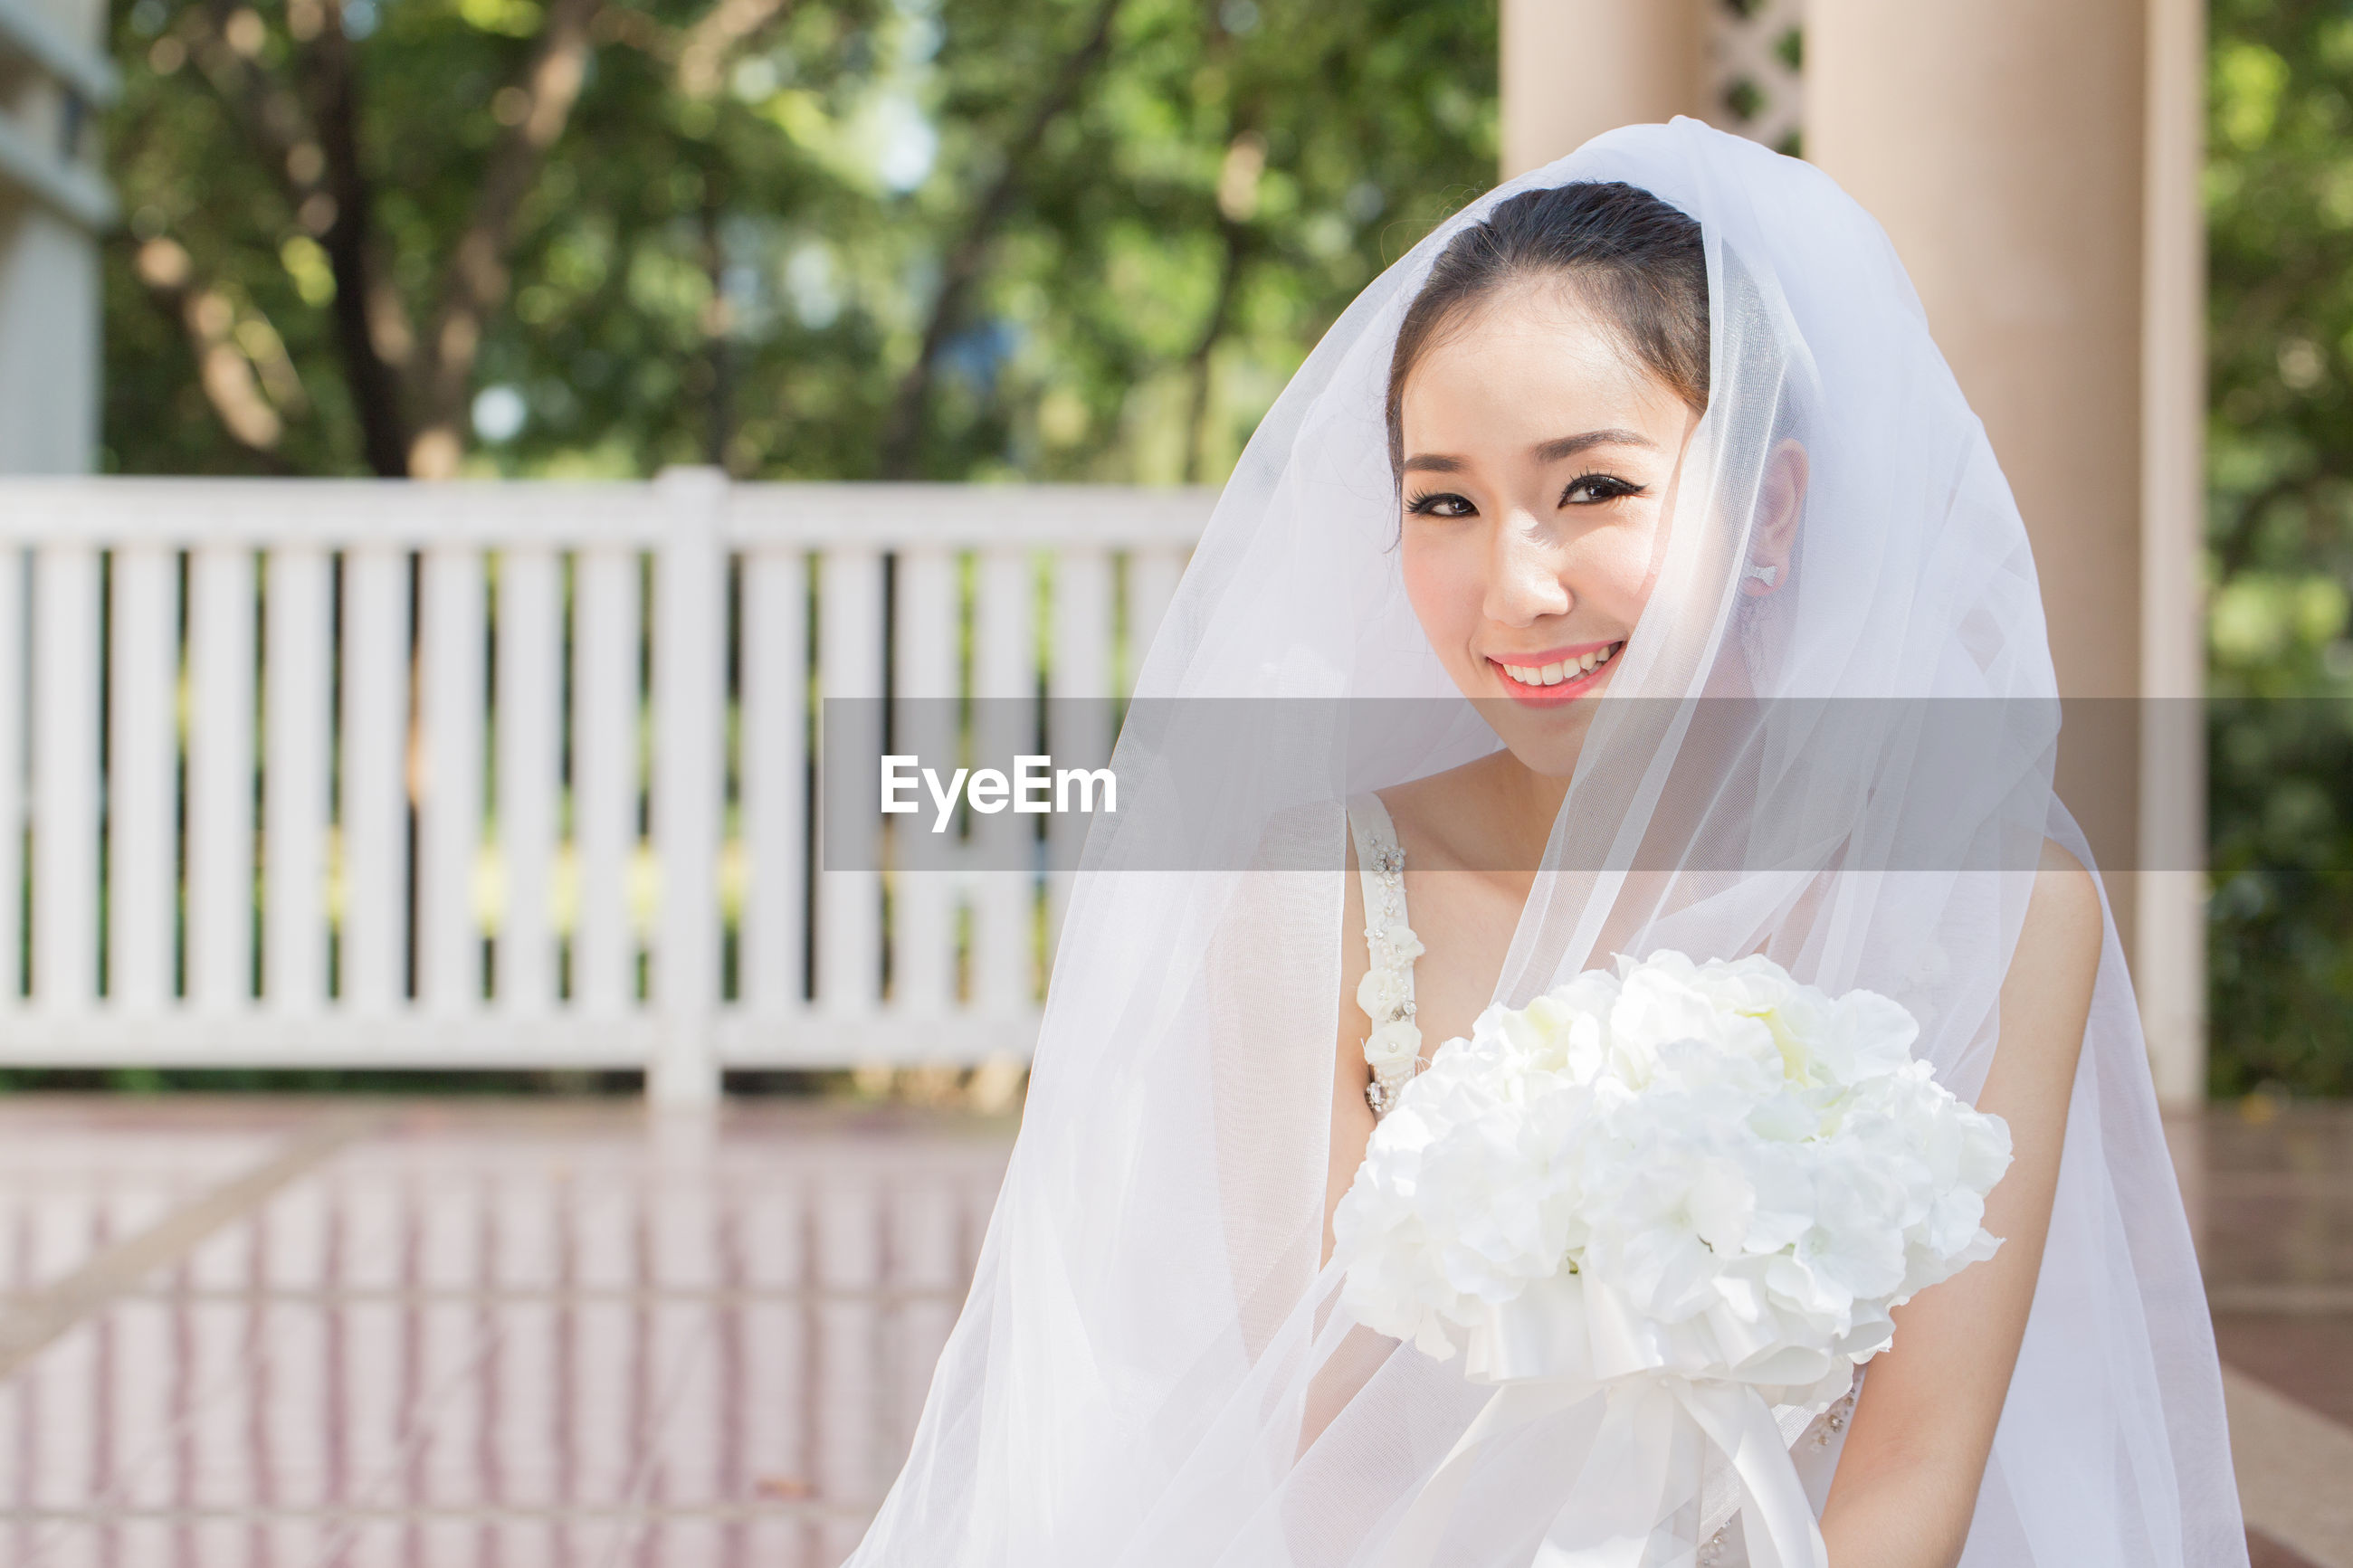 Portrait of smiling bride holding bouquet standing in park